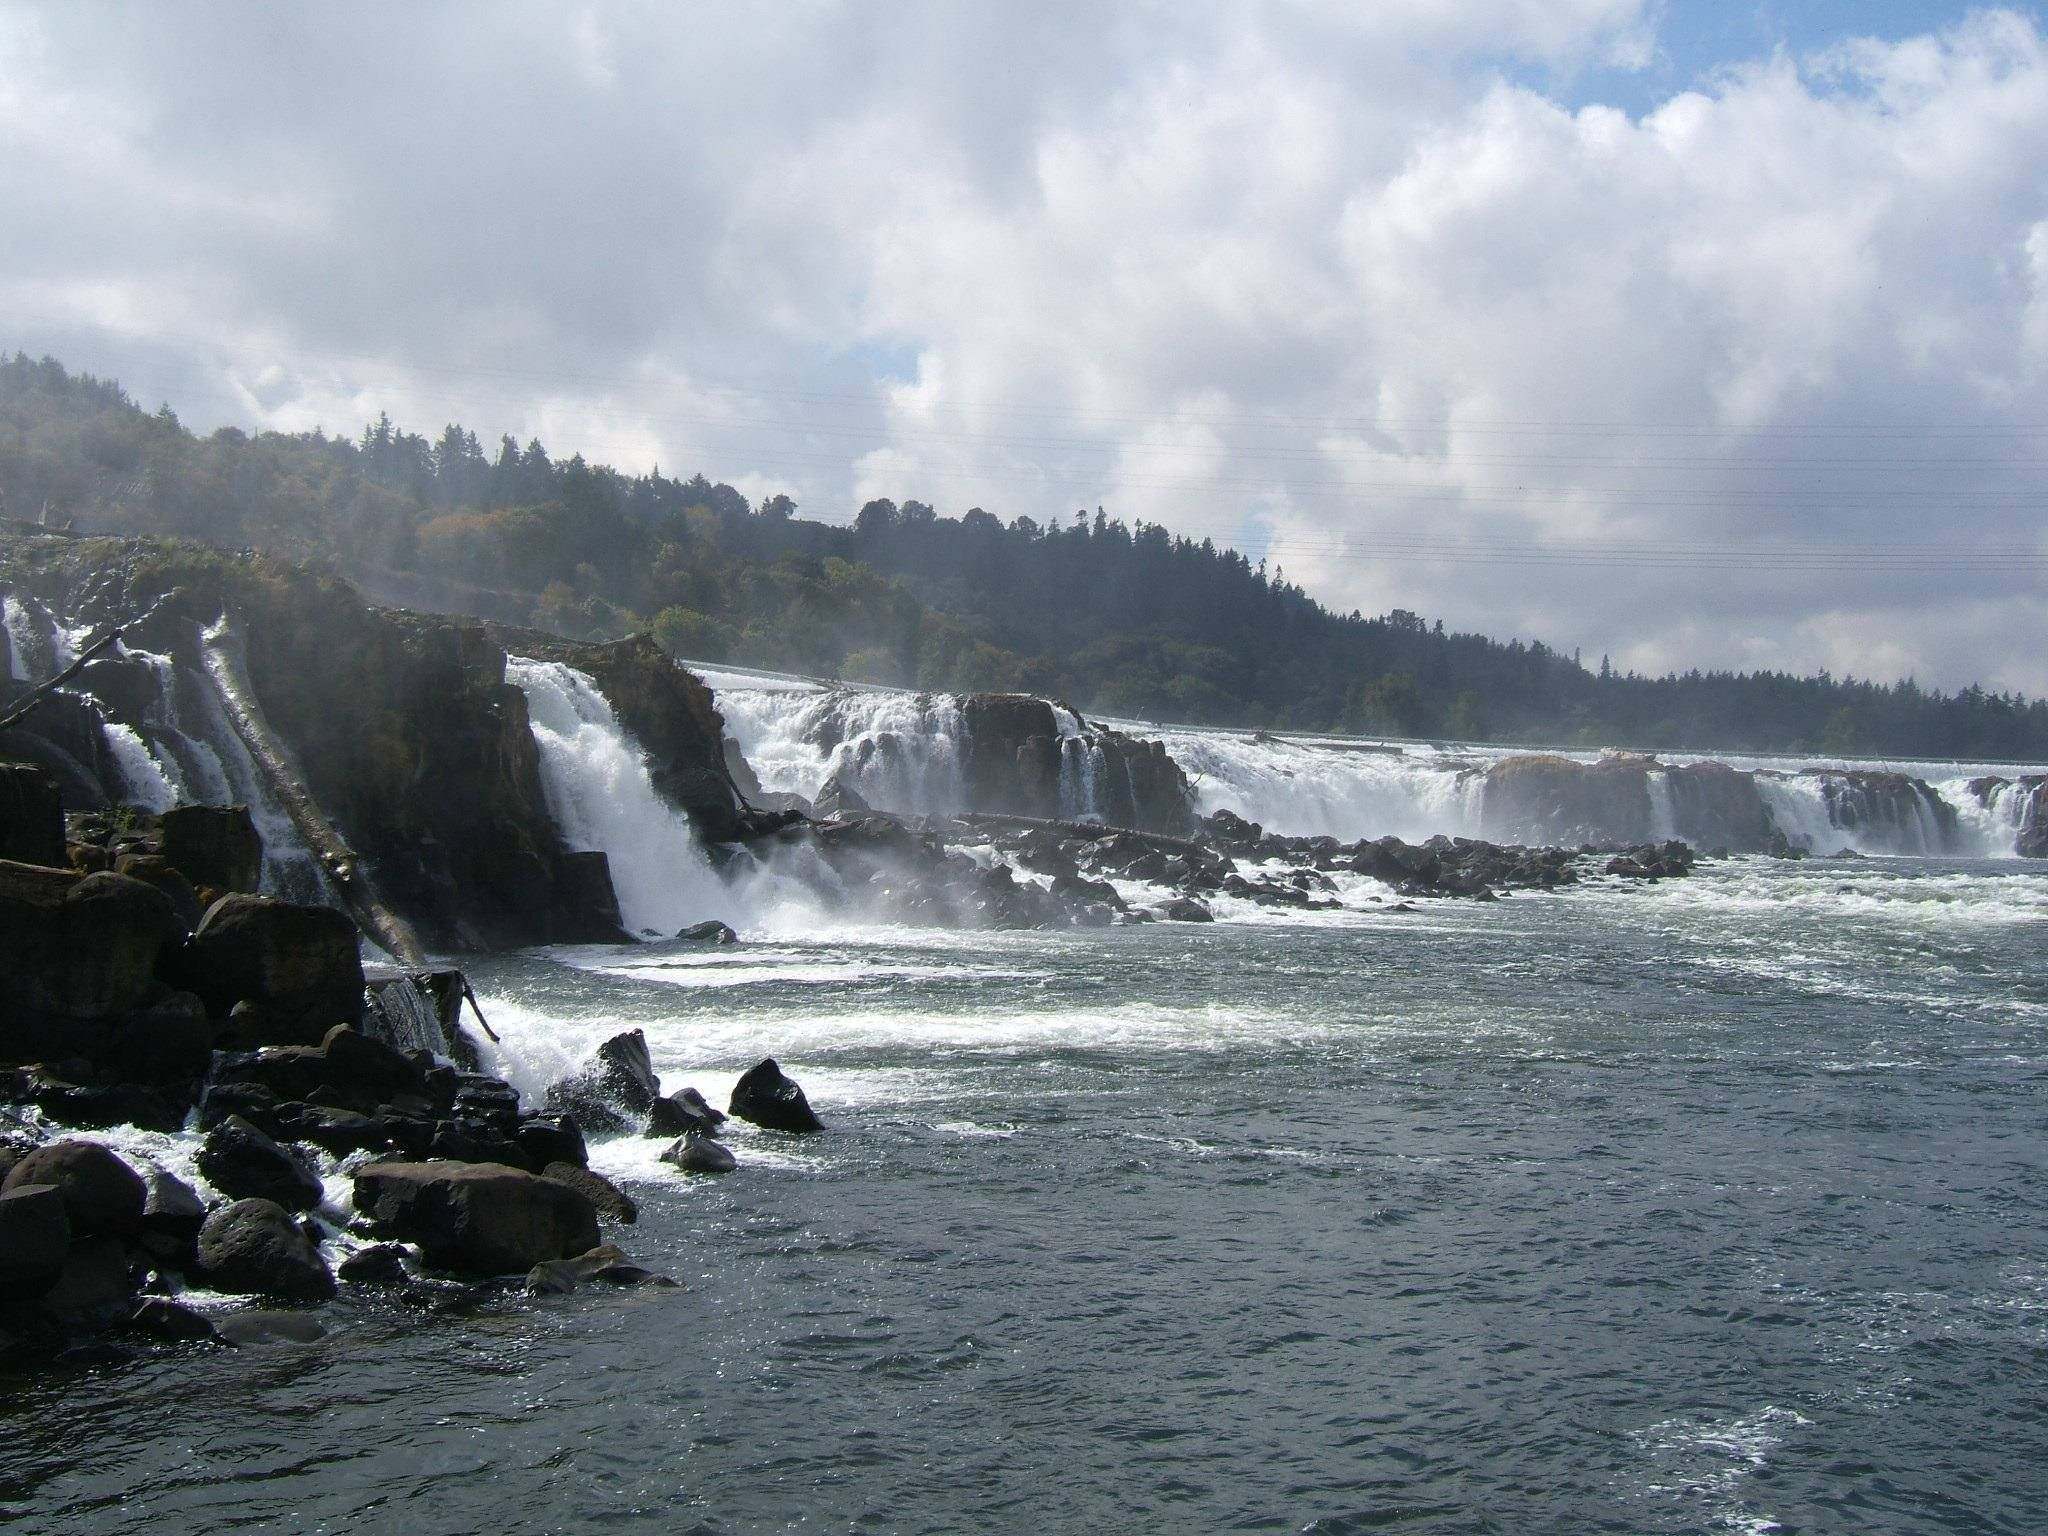 The Willamette Falls Oregon City Oregon The Willamette River Spills About 40 Feet Over Horseshoe S Oregon Waterfalls Wonders Of The World Natural Waterfalls